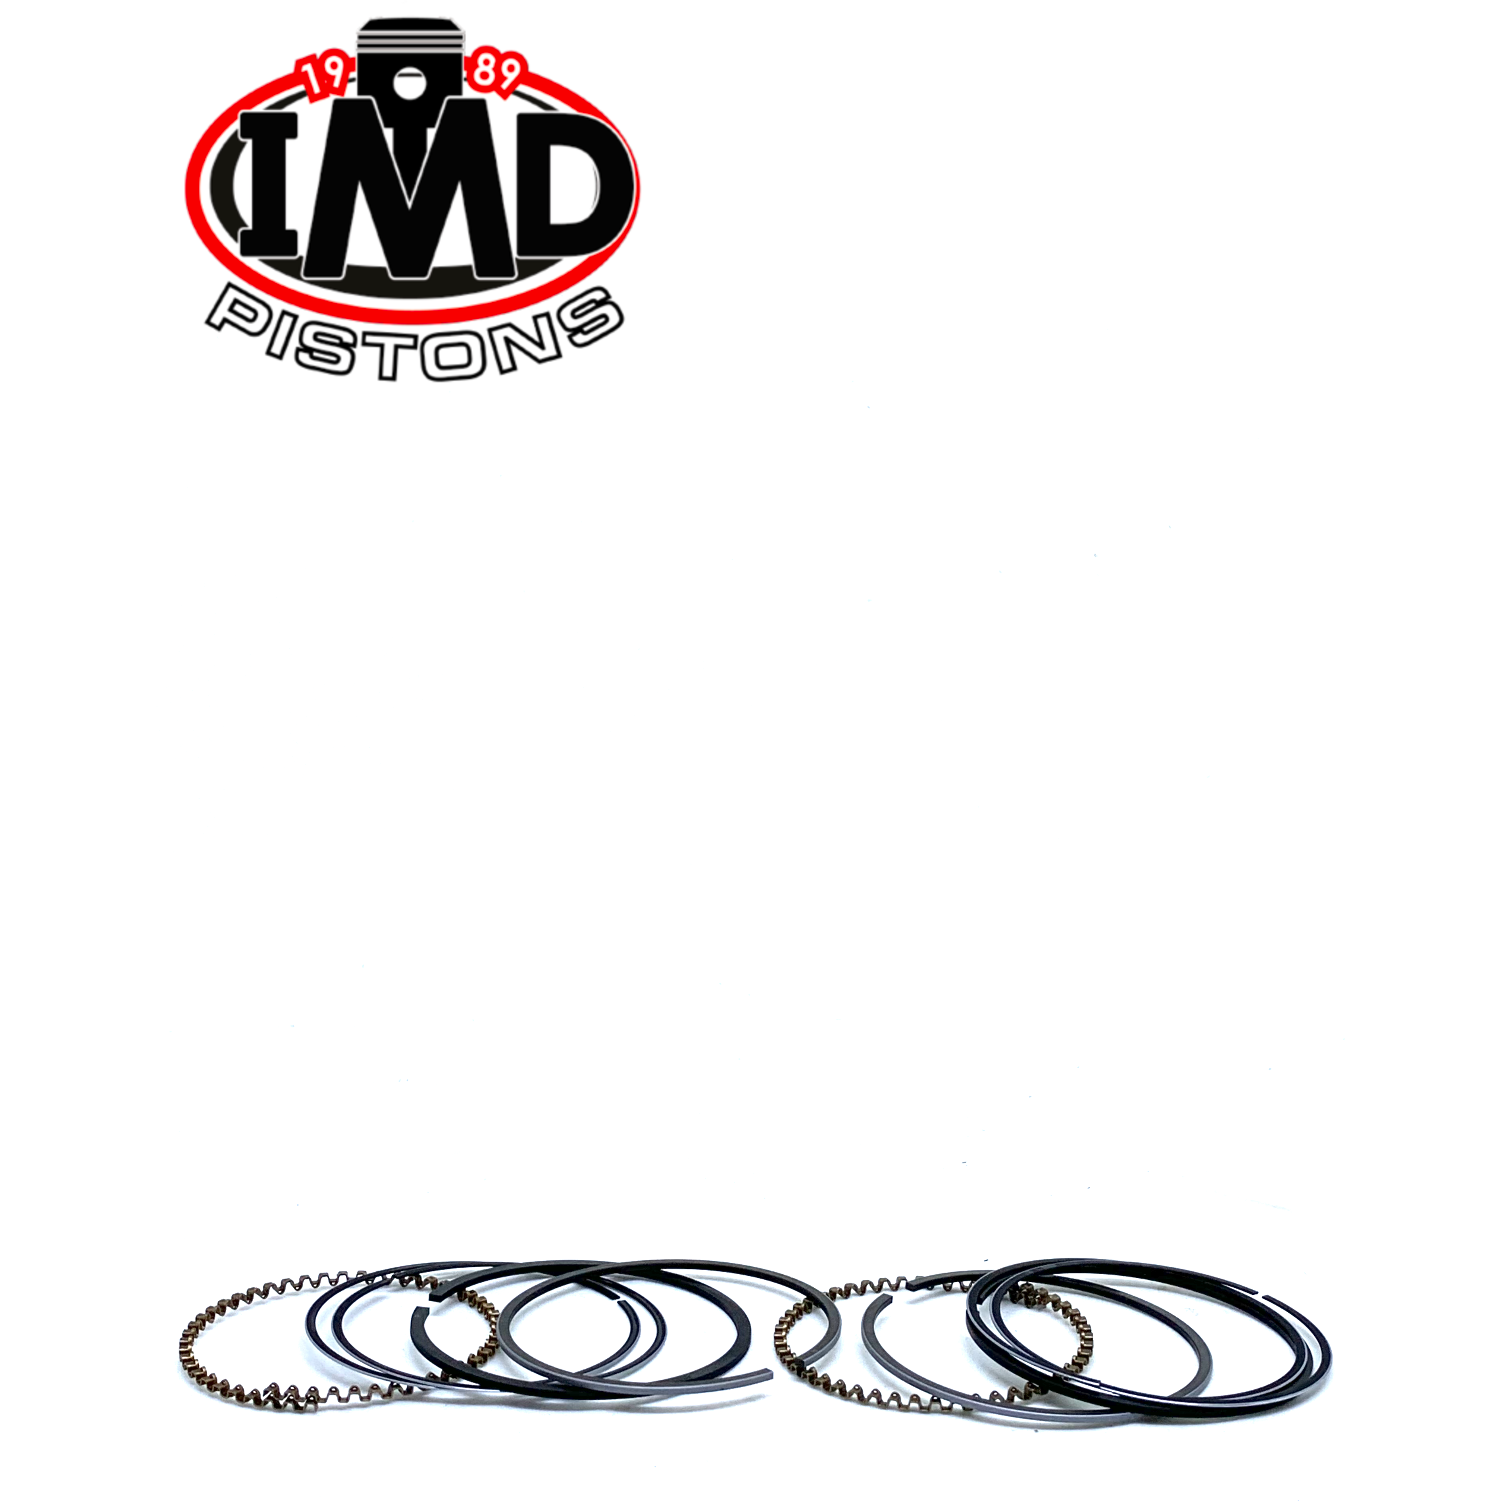 Honda CB200 CB200T PISTON RING SETS (2) - Piston Rings | IMD Pistons